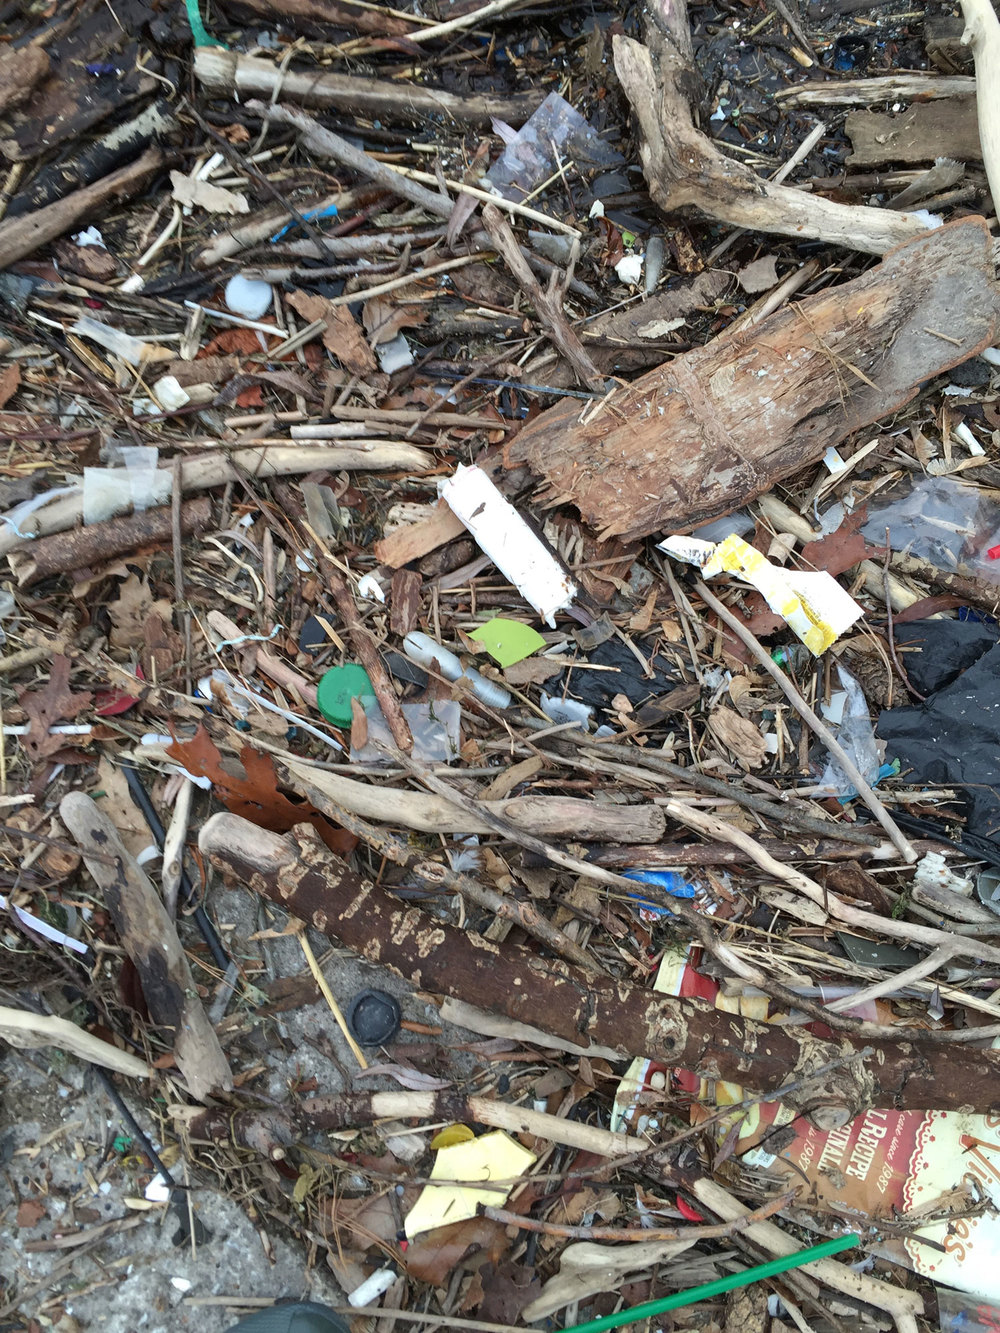 A tampon applicator buried in a mess found at Humber Bay Shores Park West, Boat Launch Area. (Photo by Michael Austin)